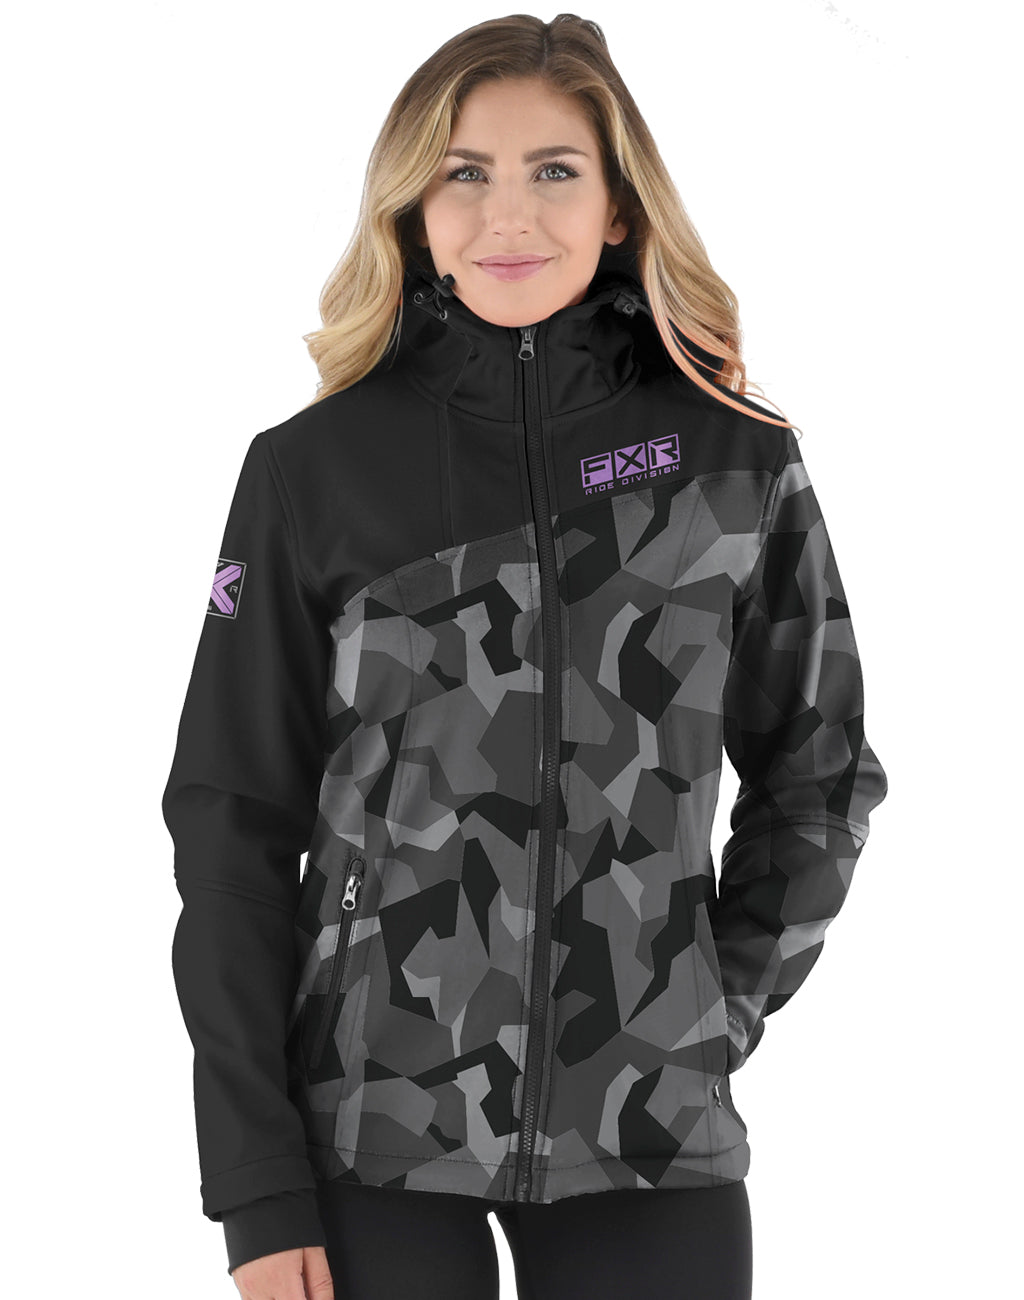 Women's FXR Maverick Softshell Jacket